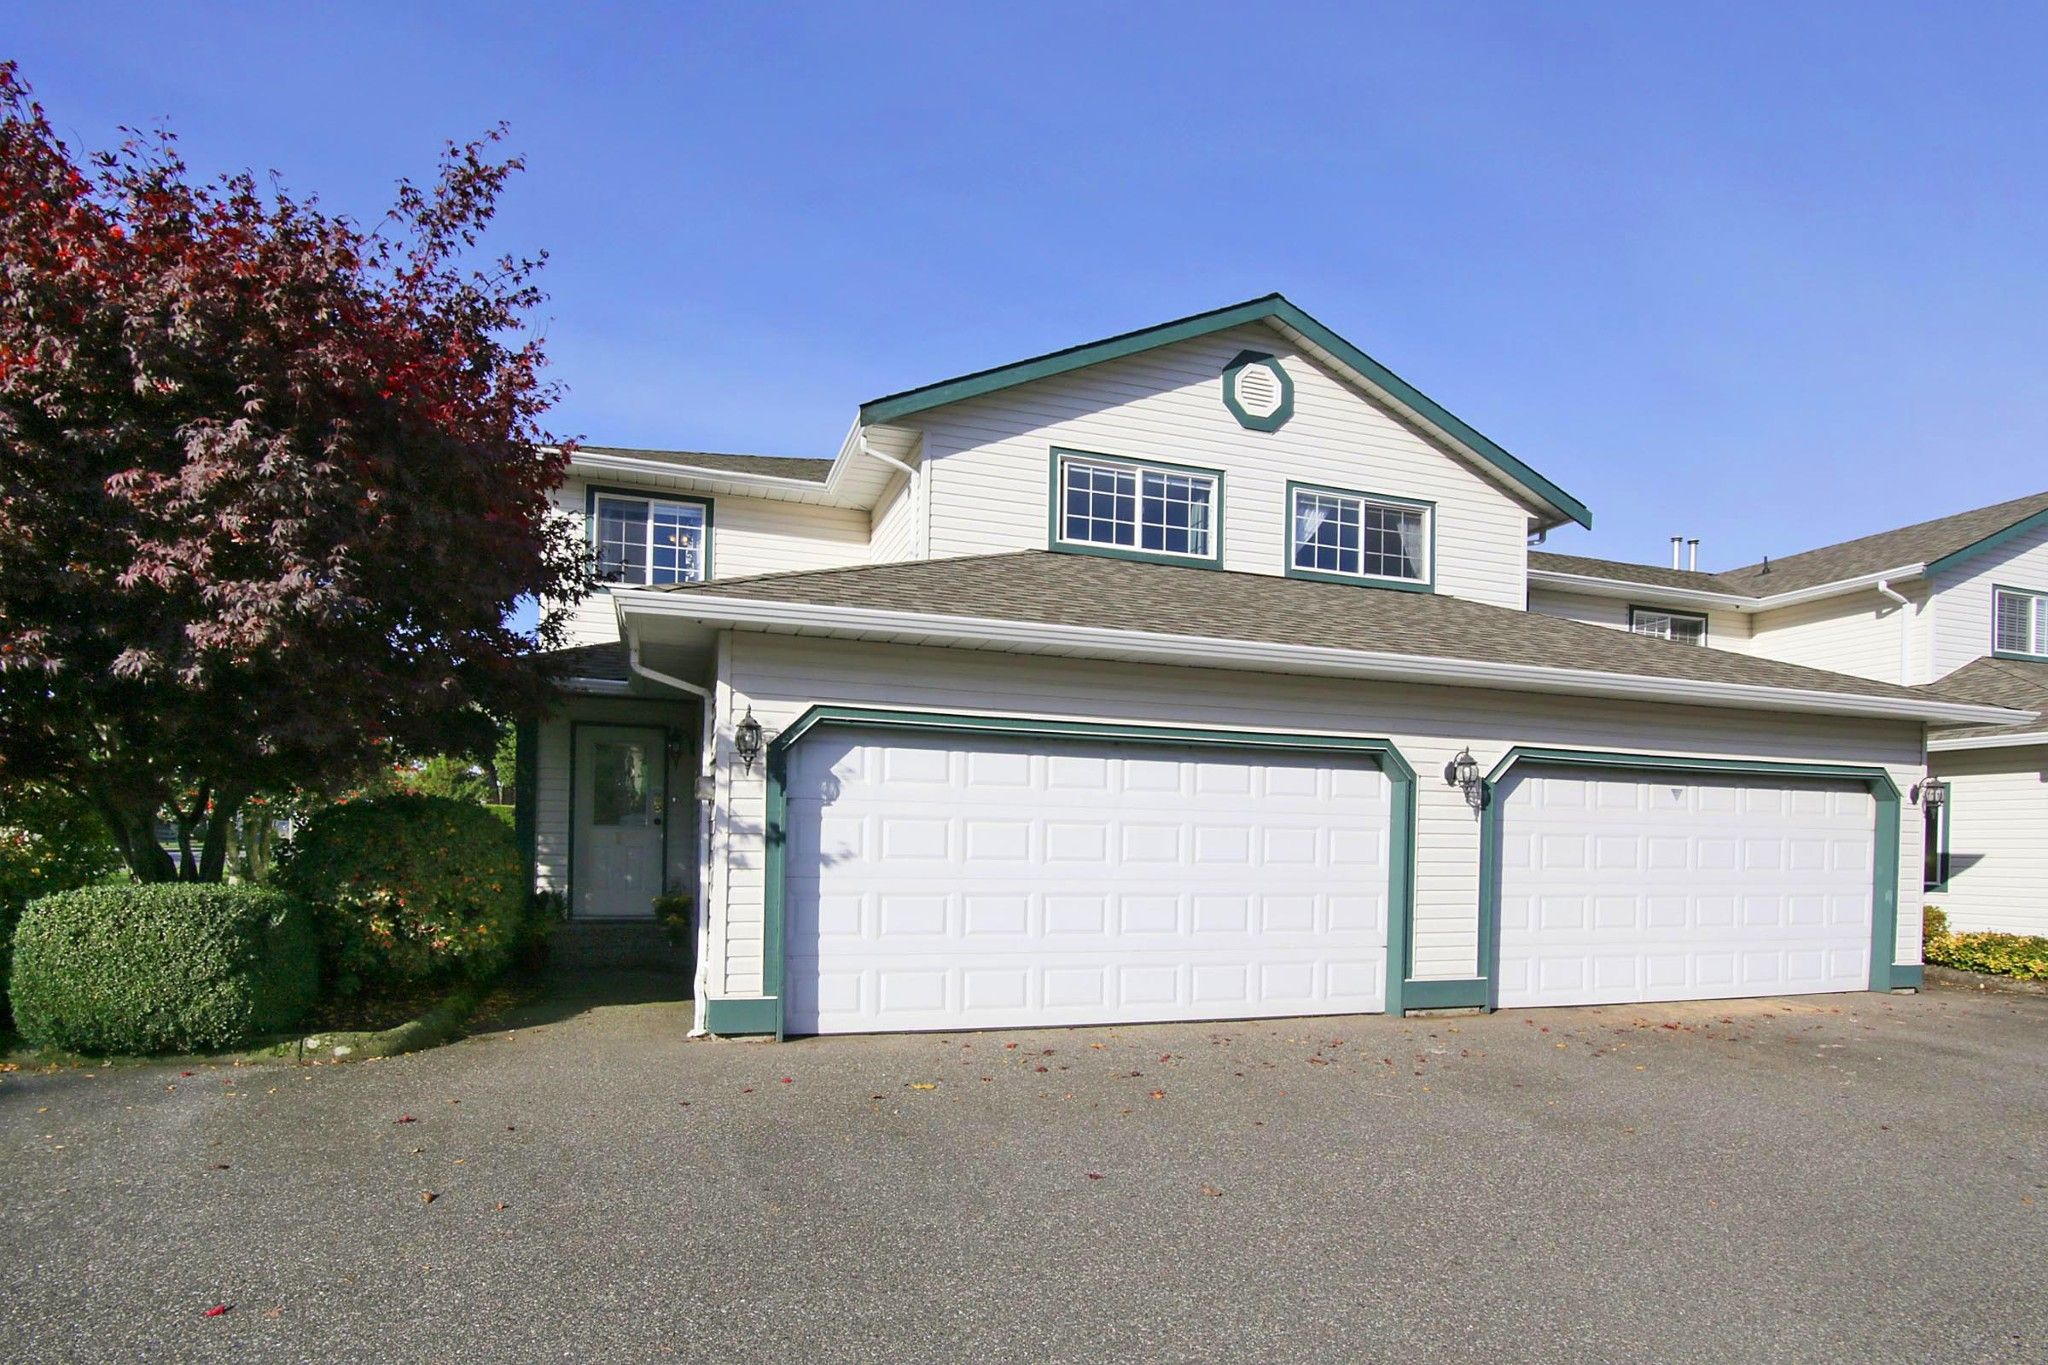 "Main Photo: 1 45873 LEWIS Avenue in Chilliwack: Chilliwack N Yale-Well Townhouse for sale in ""HOLLY LANE"" : MLS®# R2415494"